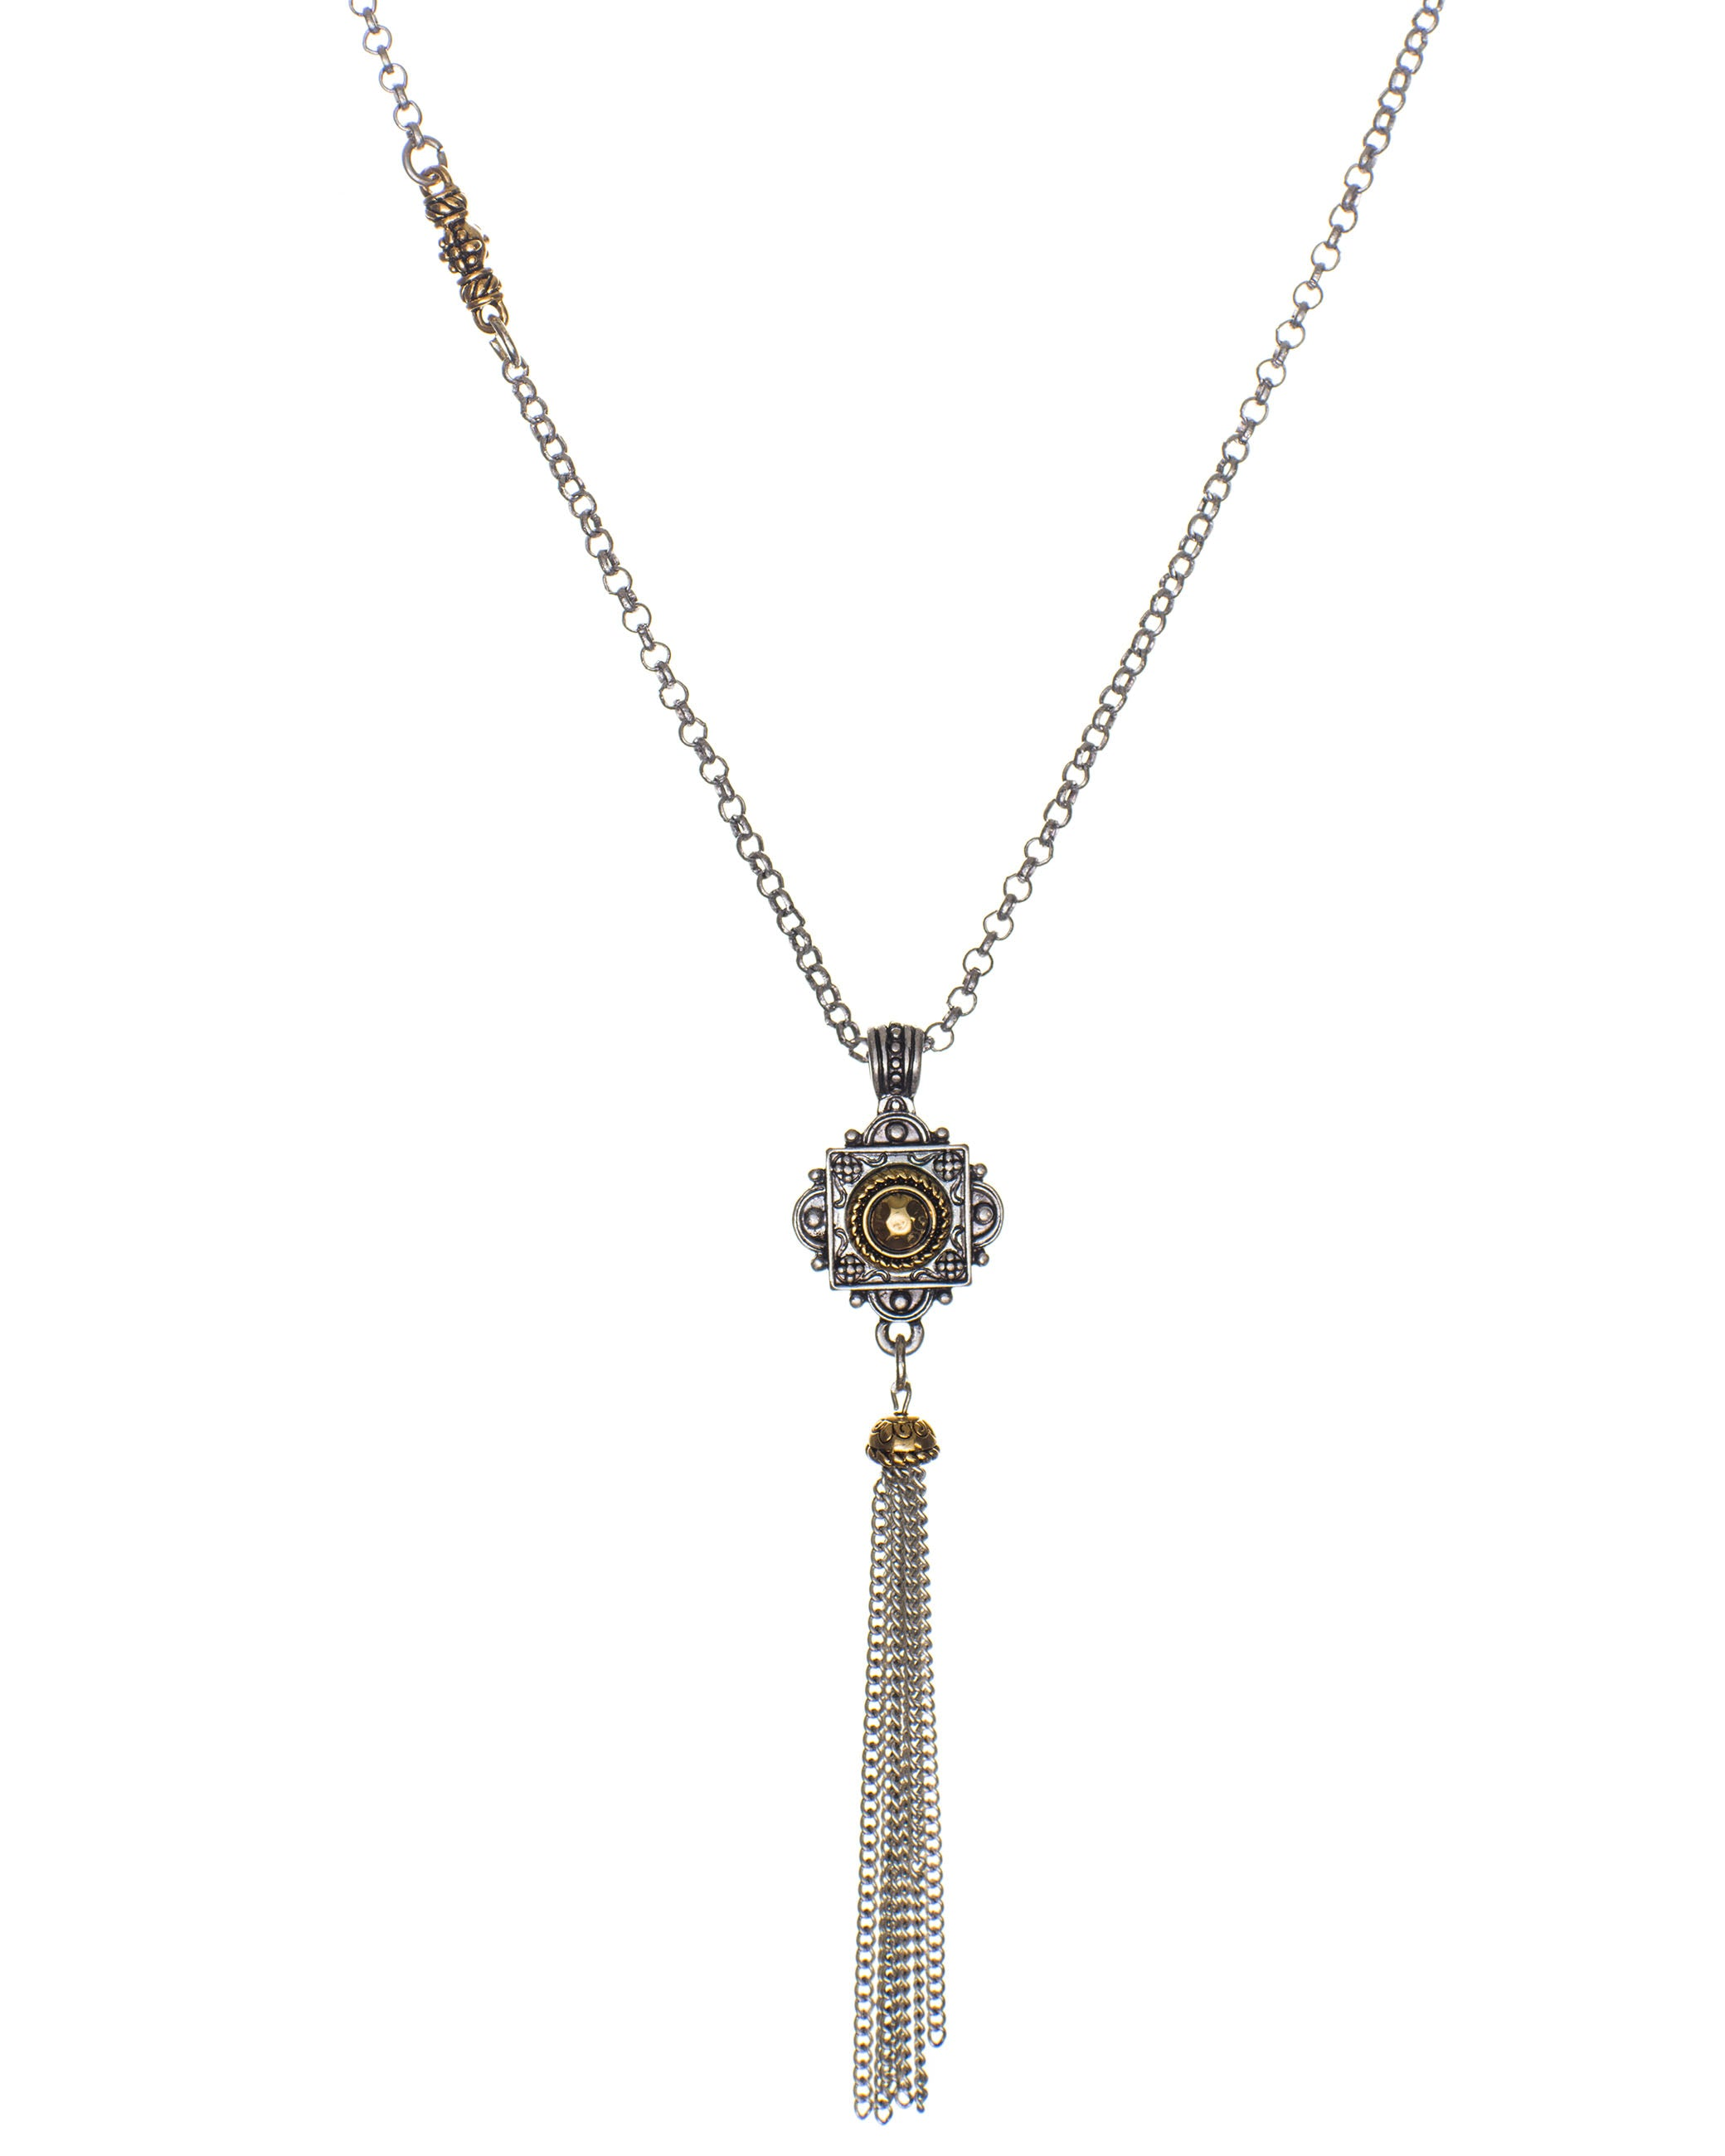 w cffcfff pendant steel necklace k rope medallion medusa stainless plated gold chain caymancode